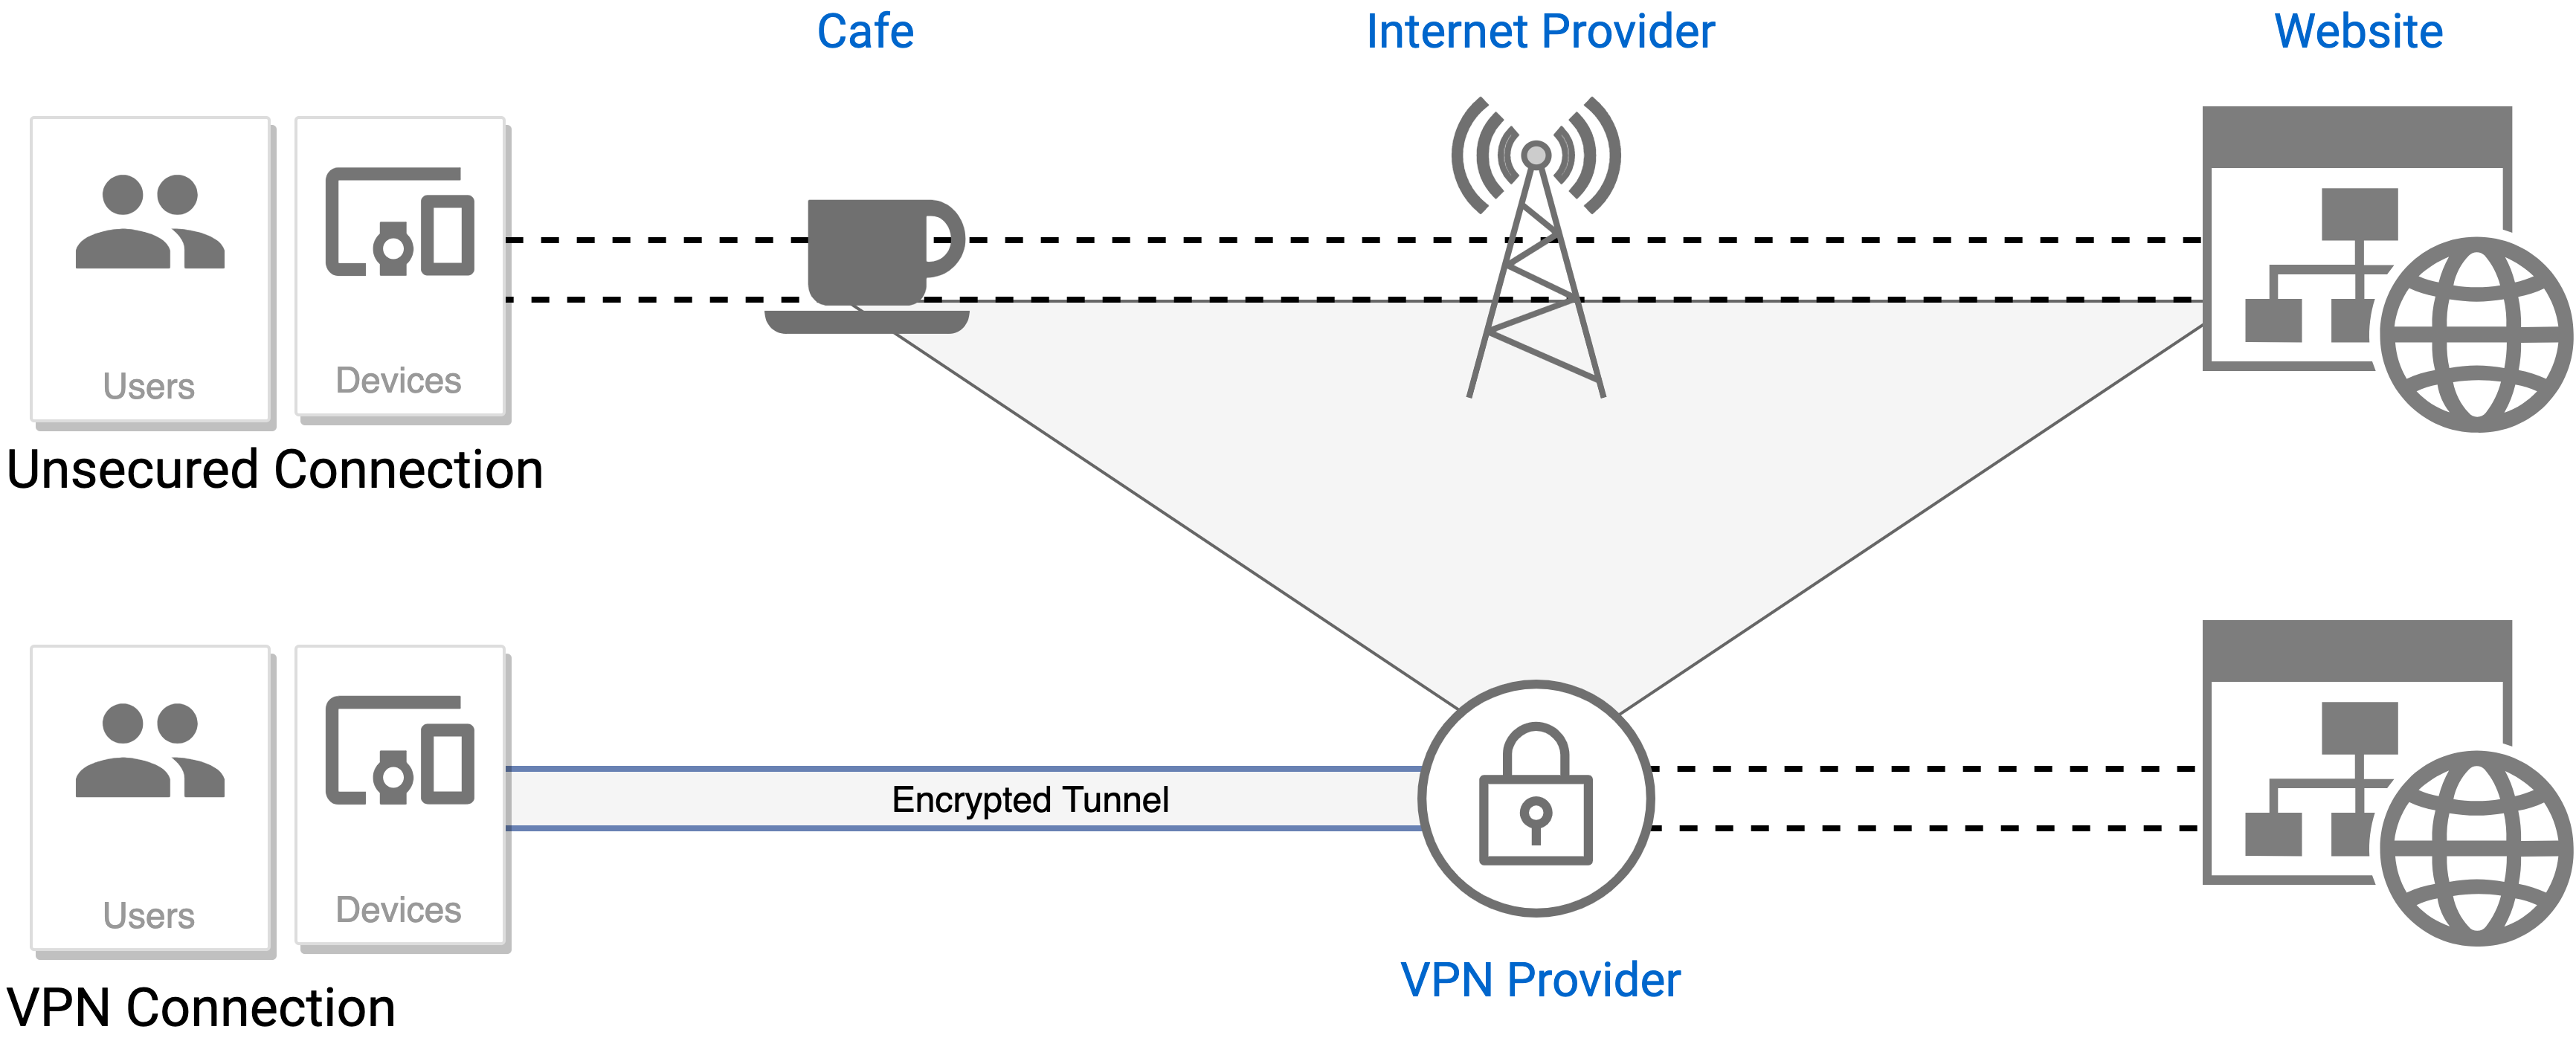 Unsecured connections v. VPN Connections